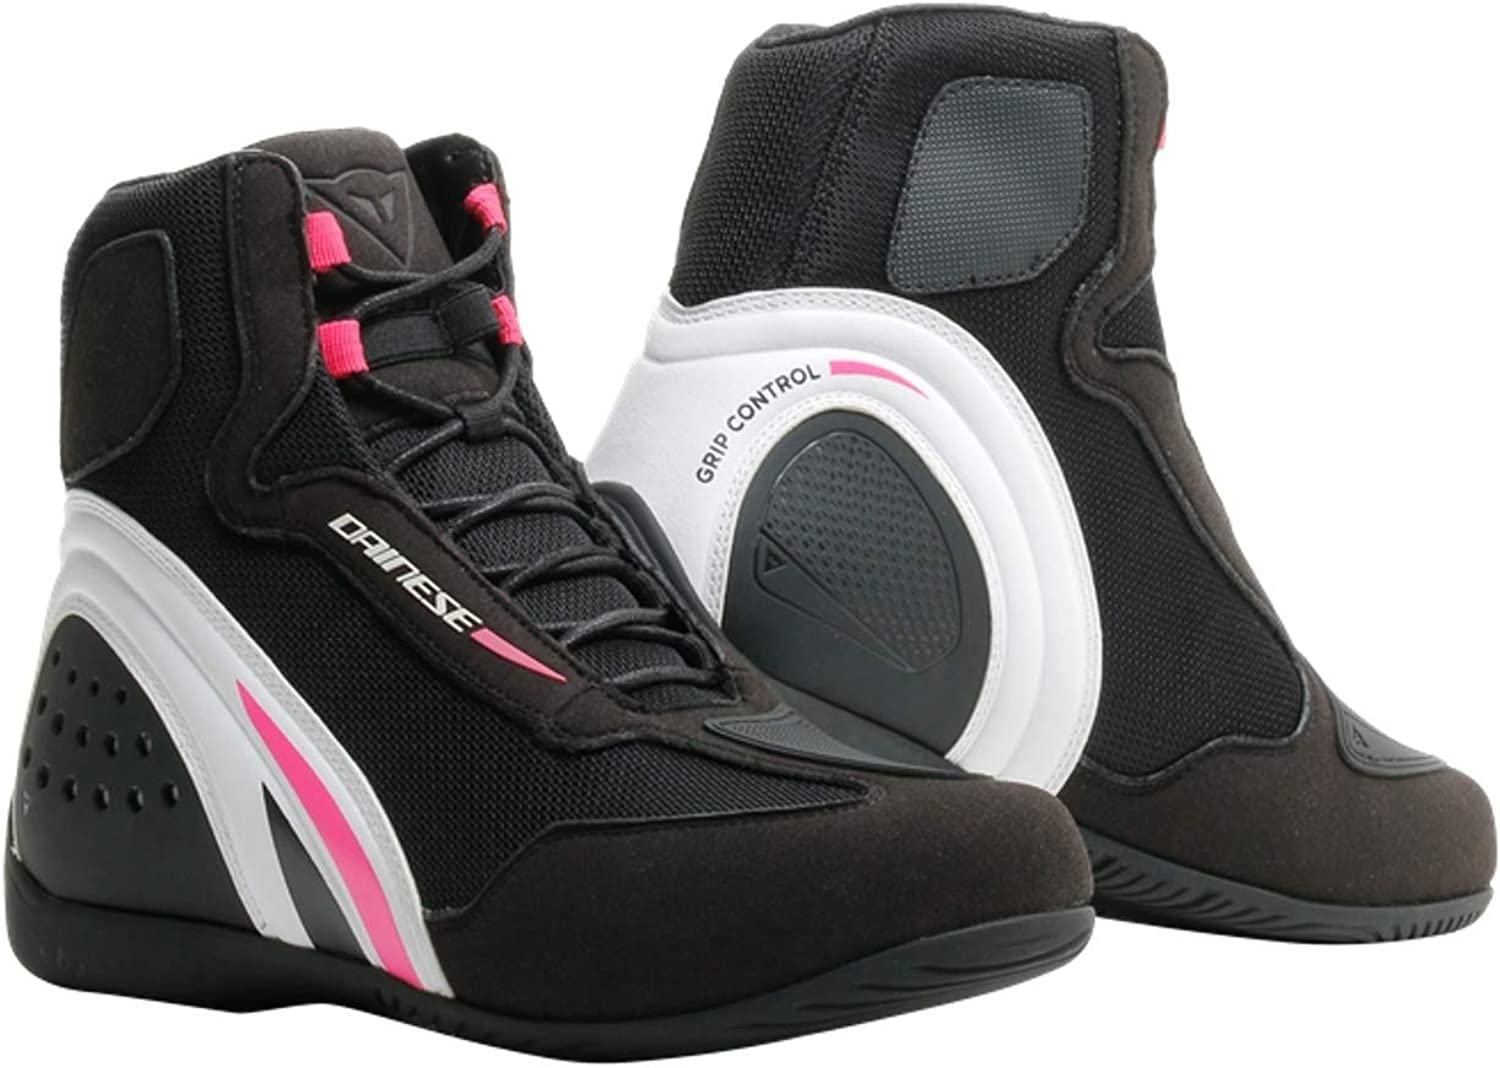 DAINESE Motorsautope D1 Air Lady sautope 40